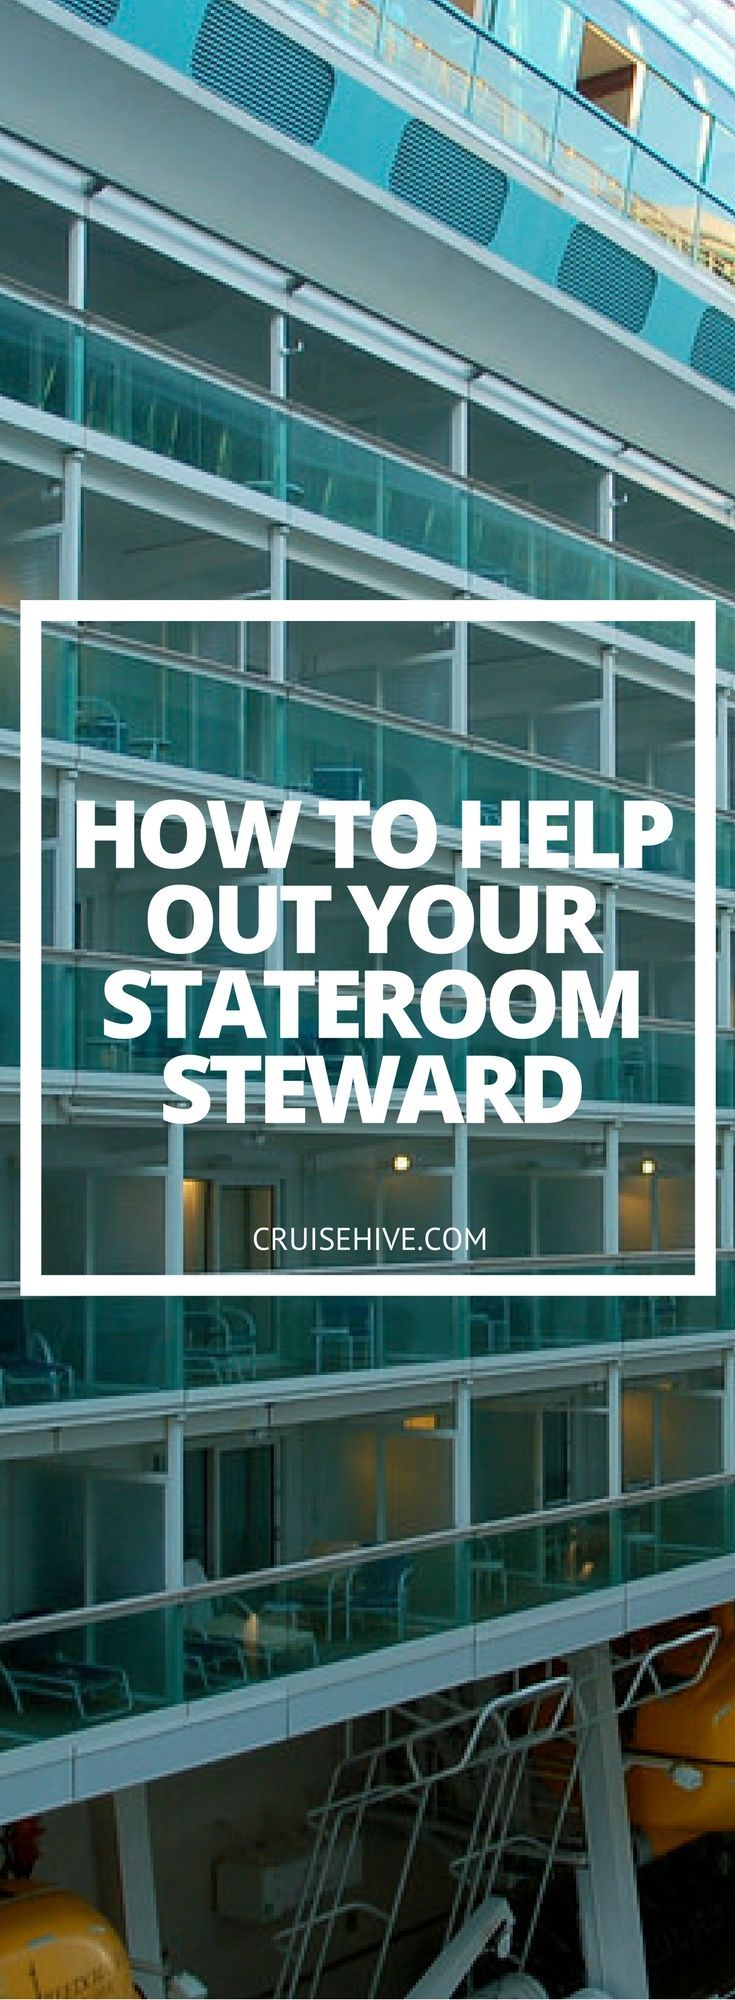 What can you, one of those pampered passengers, do to make your steward's job just a little easier?